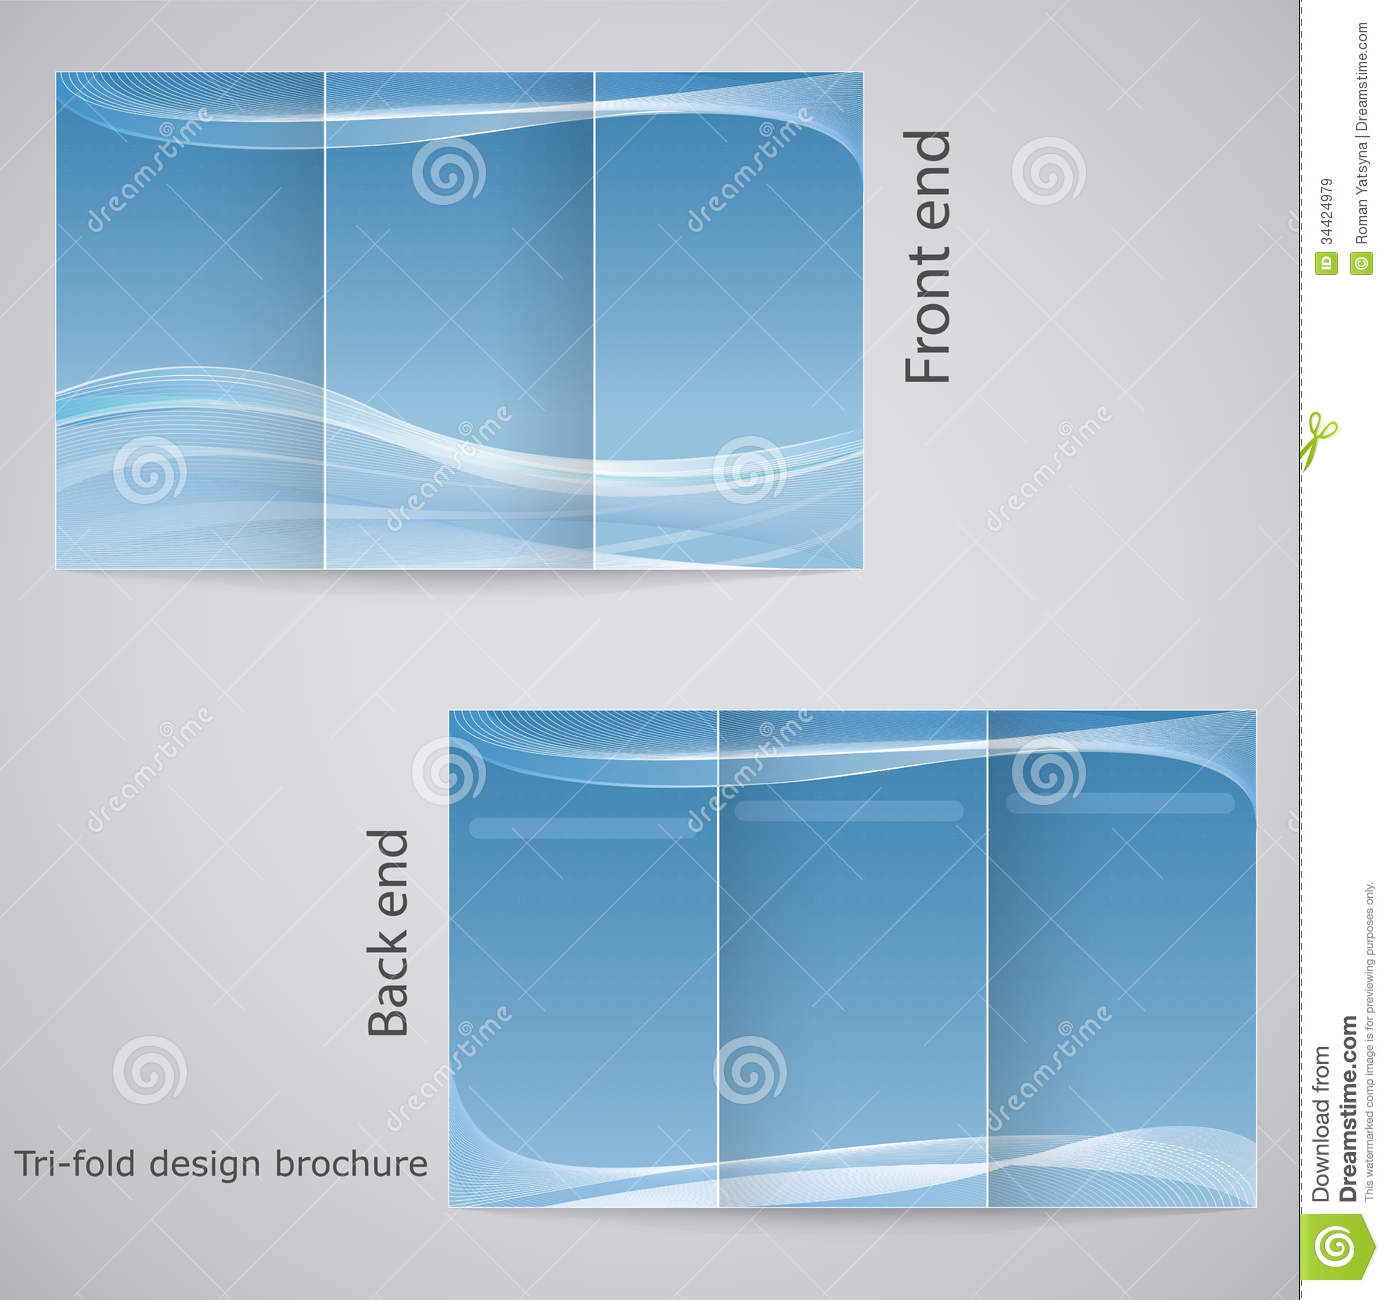 17 tri fold brochure design templates images tri fold for Tri fold brochure word template